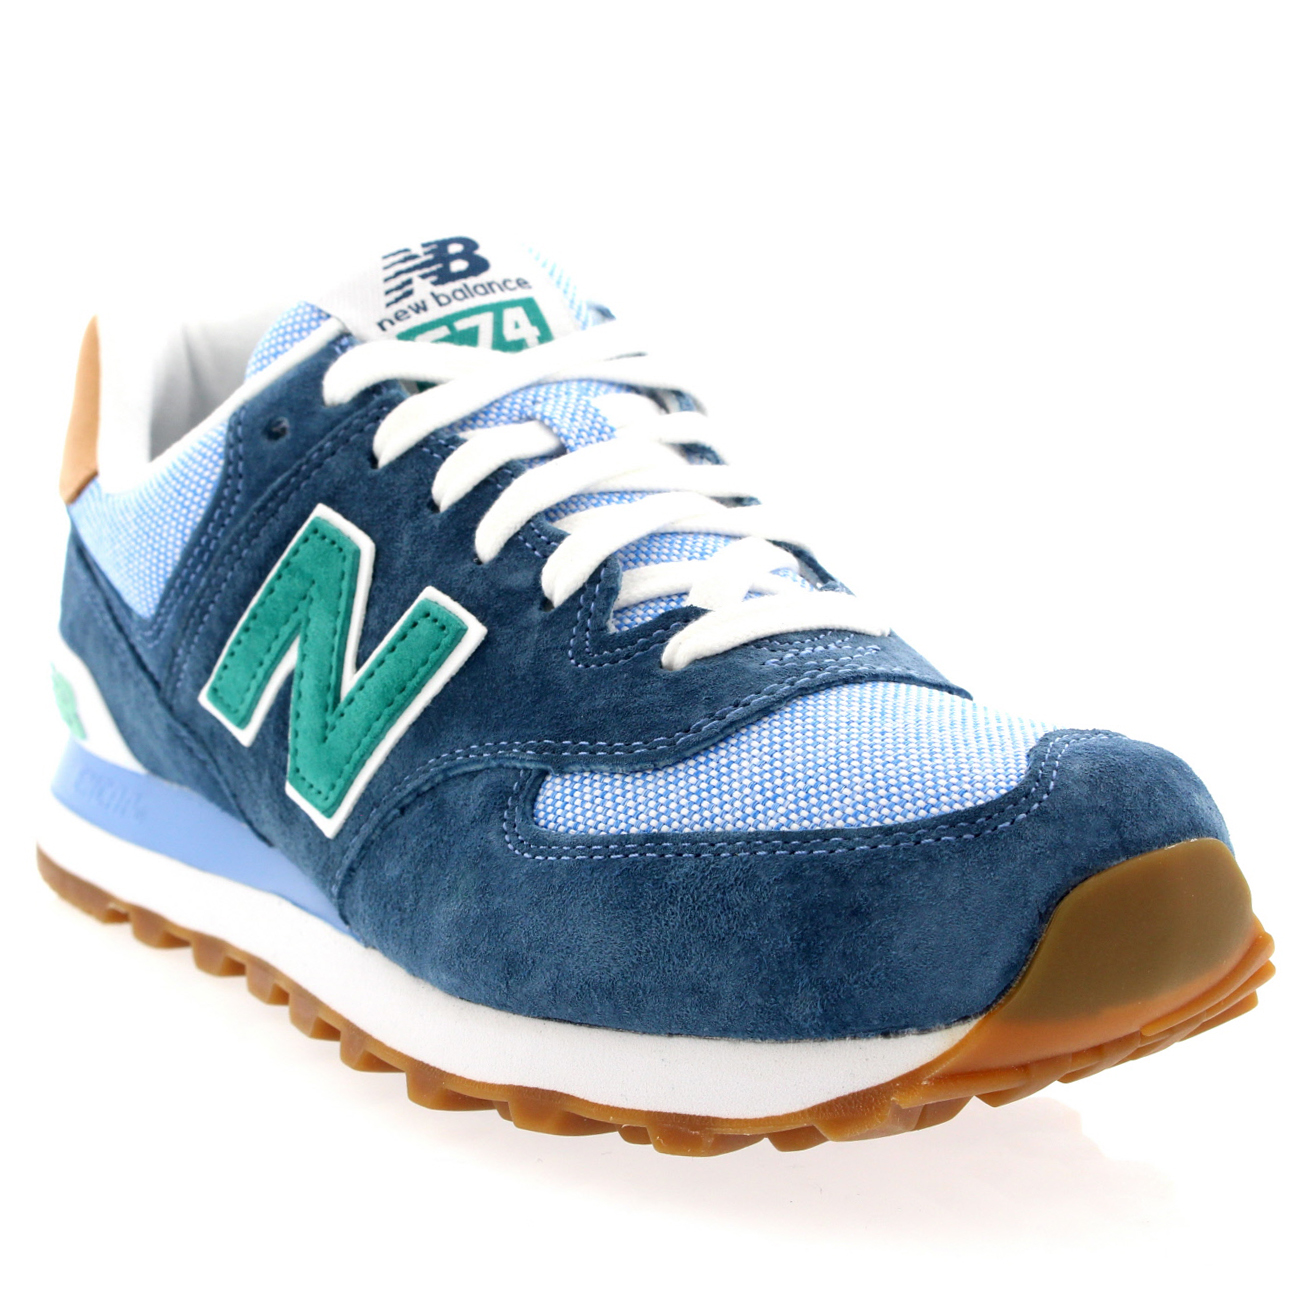 New Balance 574 Lifestyle Premium Cruisin